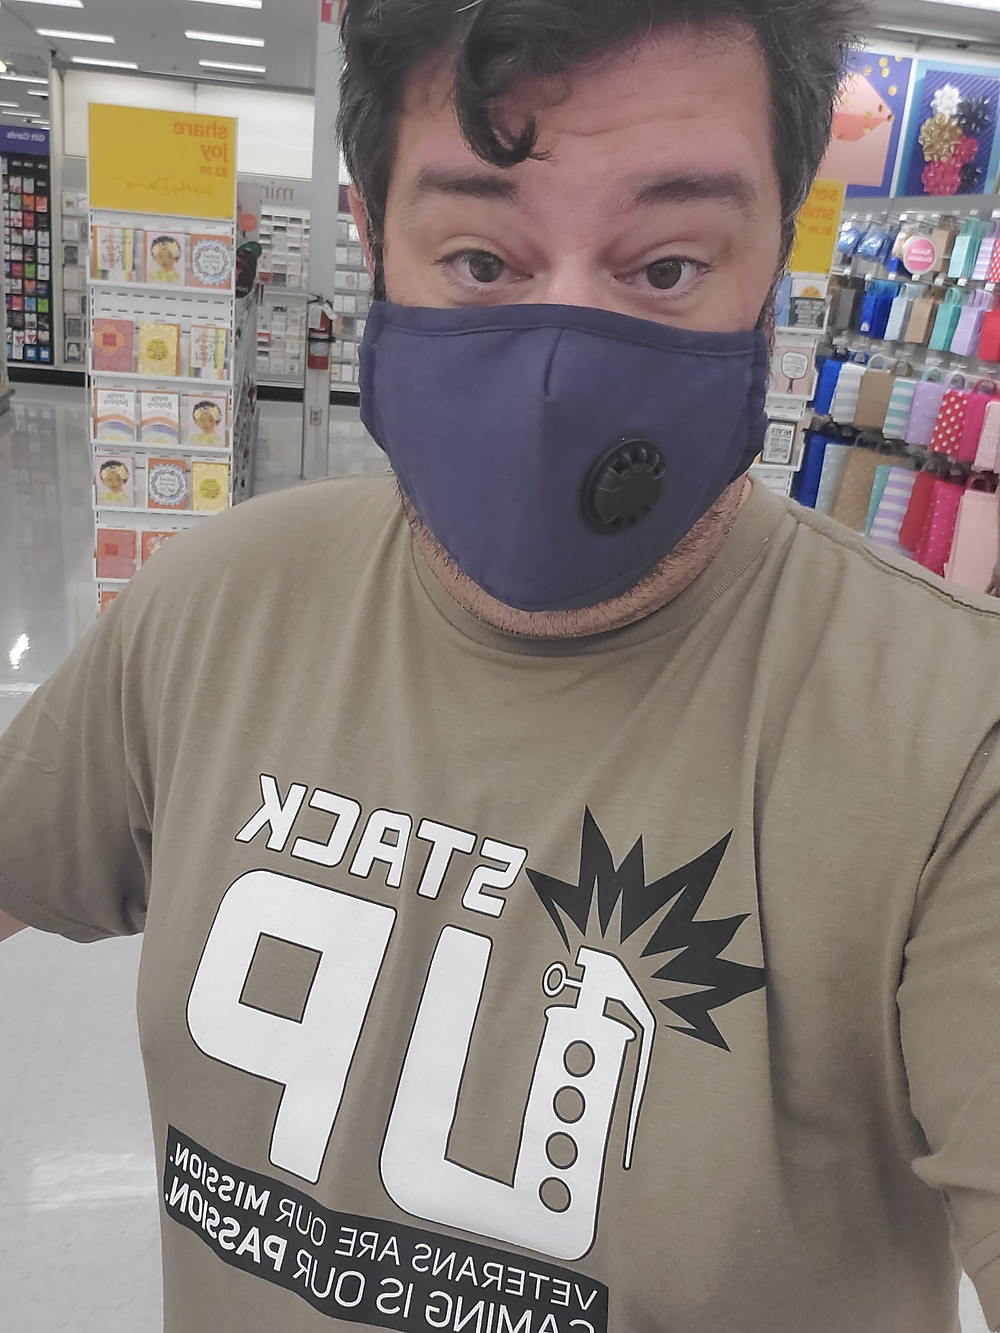 Selfie: Giles wears a mask and Stack Up shirt. He is at the store.